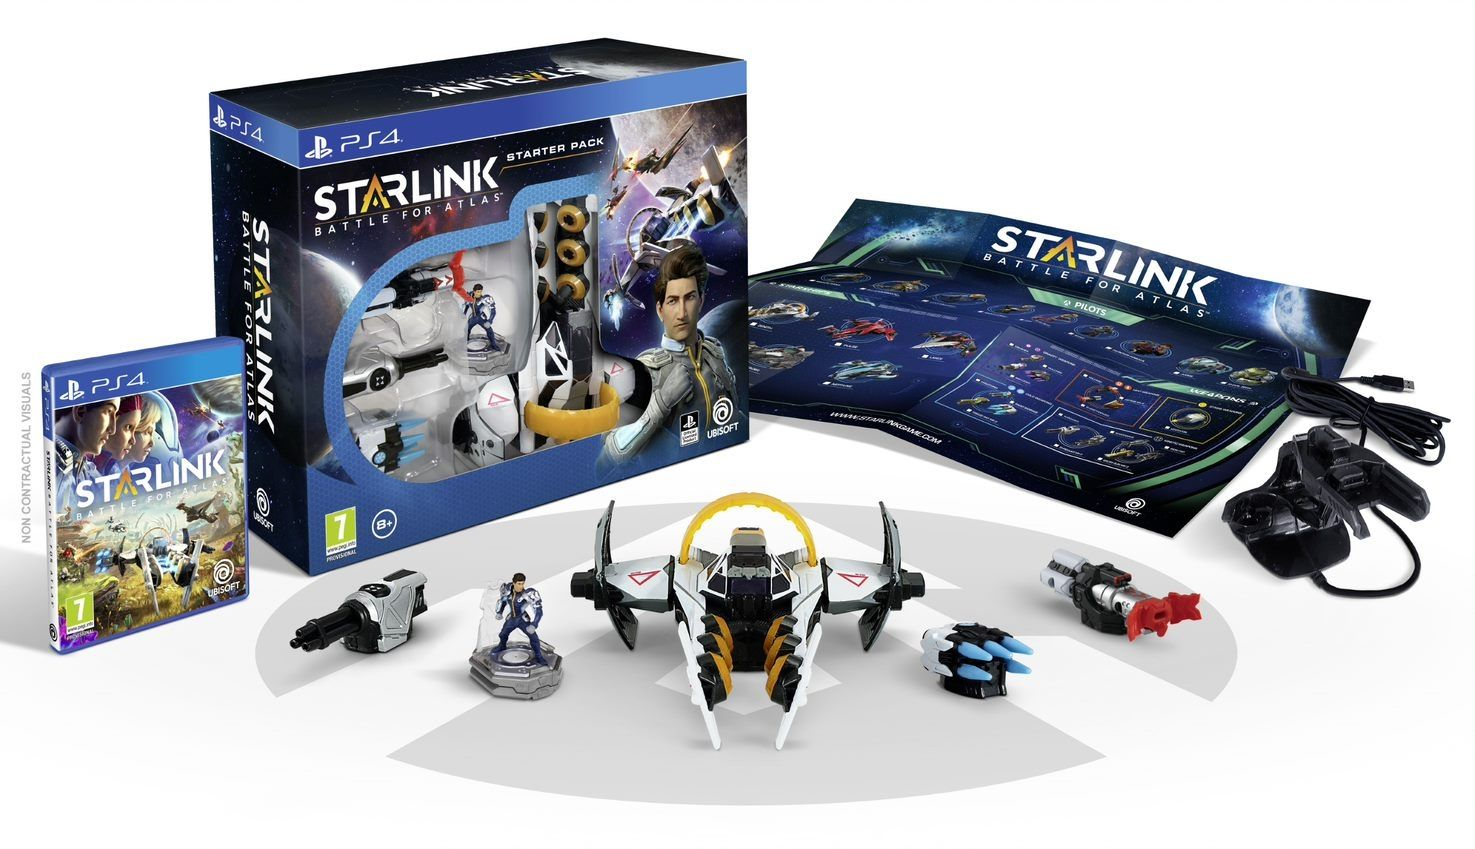 Starlink: Battle for Atlas - Starter Pack (PS4) - 2